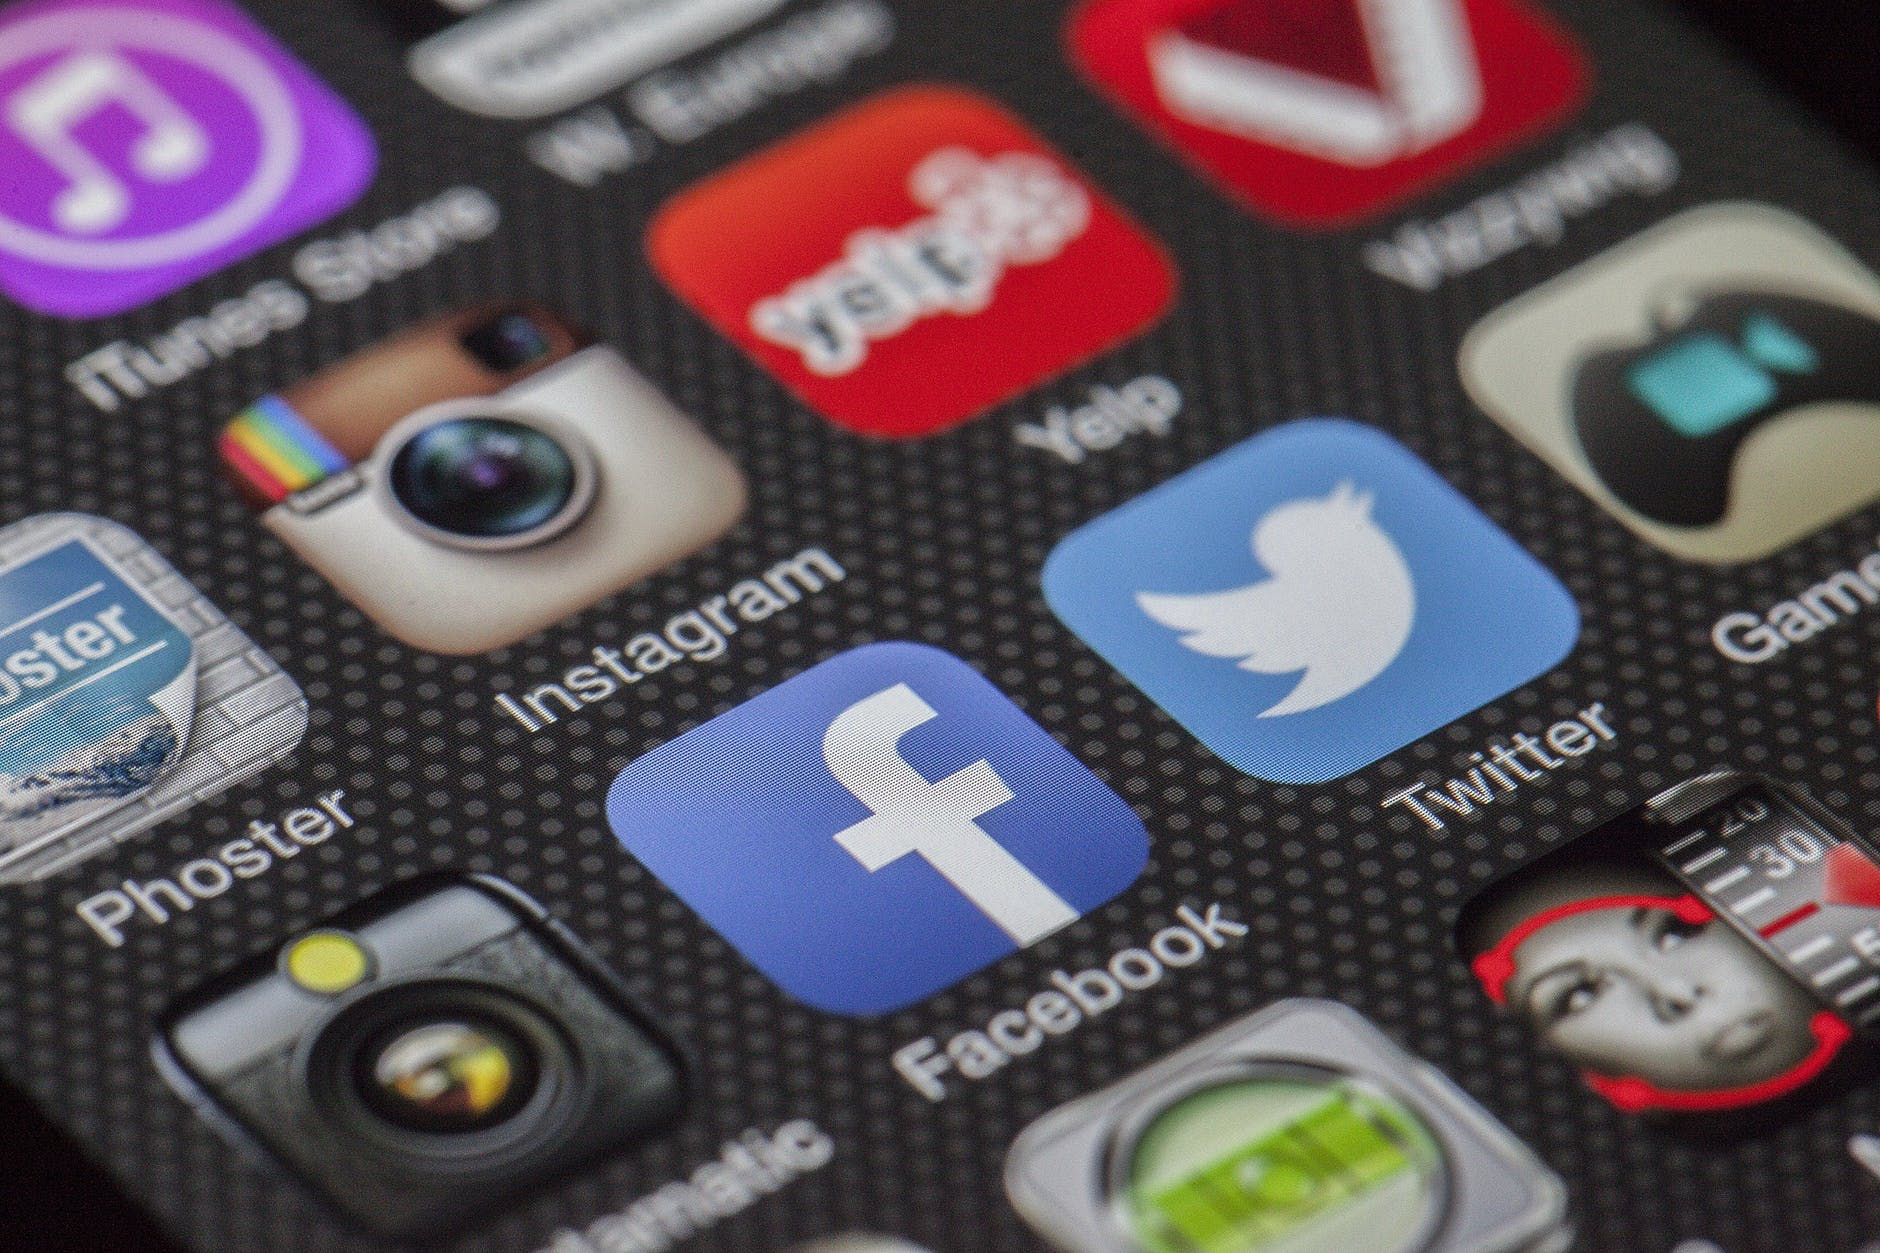 A strong social media followers help to get you started with affiliate marketing as initial customers.